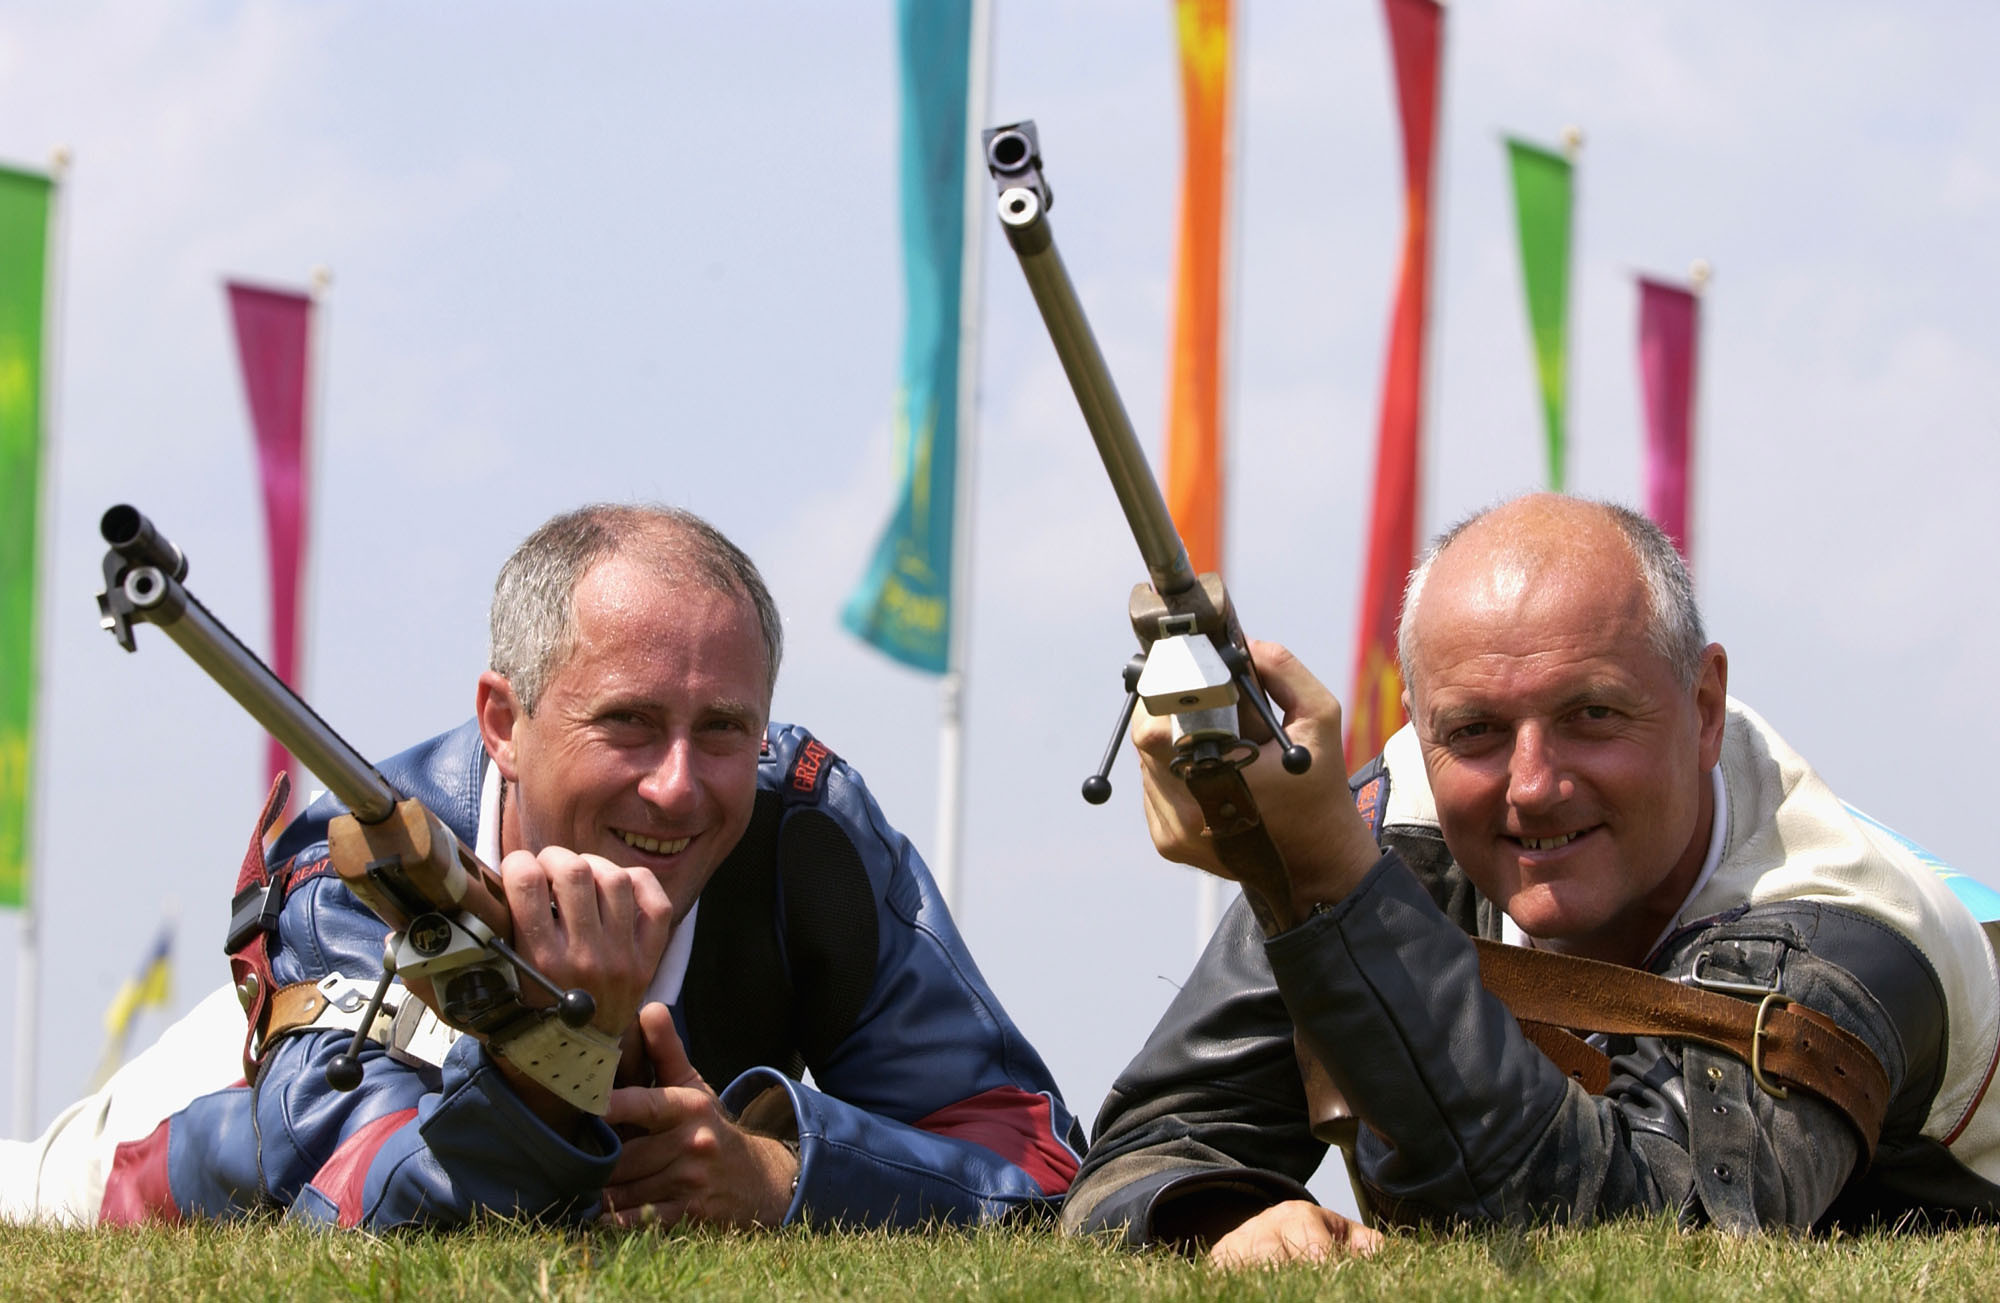 Bisley hosted shooting when Manchester staged the 2002 Commonwealth Games, when Northern Ireland's David Calvert, right, and partner Martin Millar, left, won the gold medal in the open full bore rifle pairs ©Getty Images